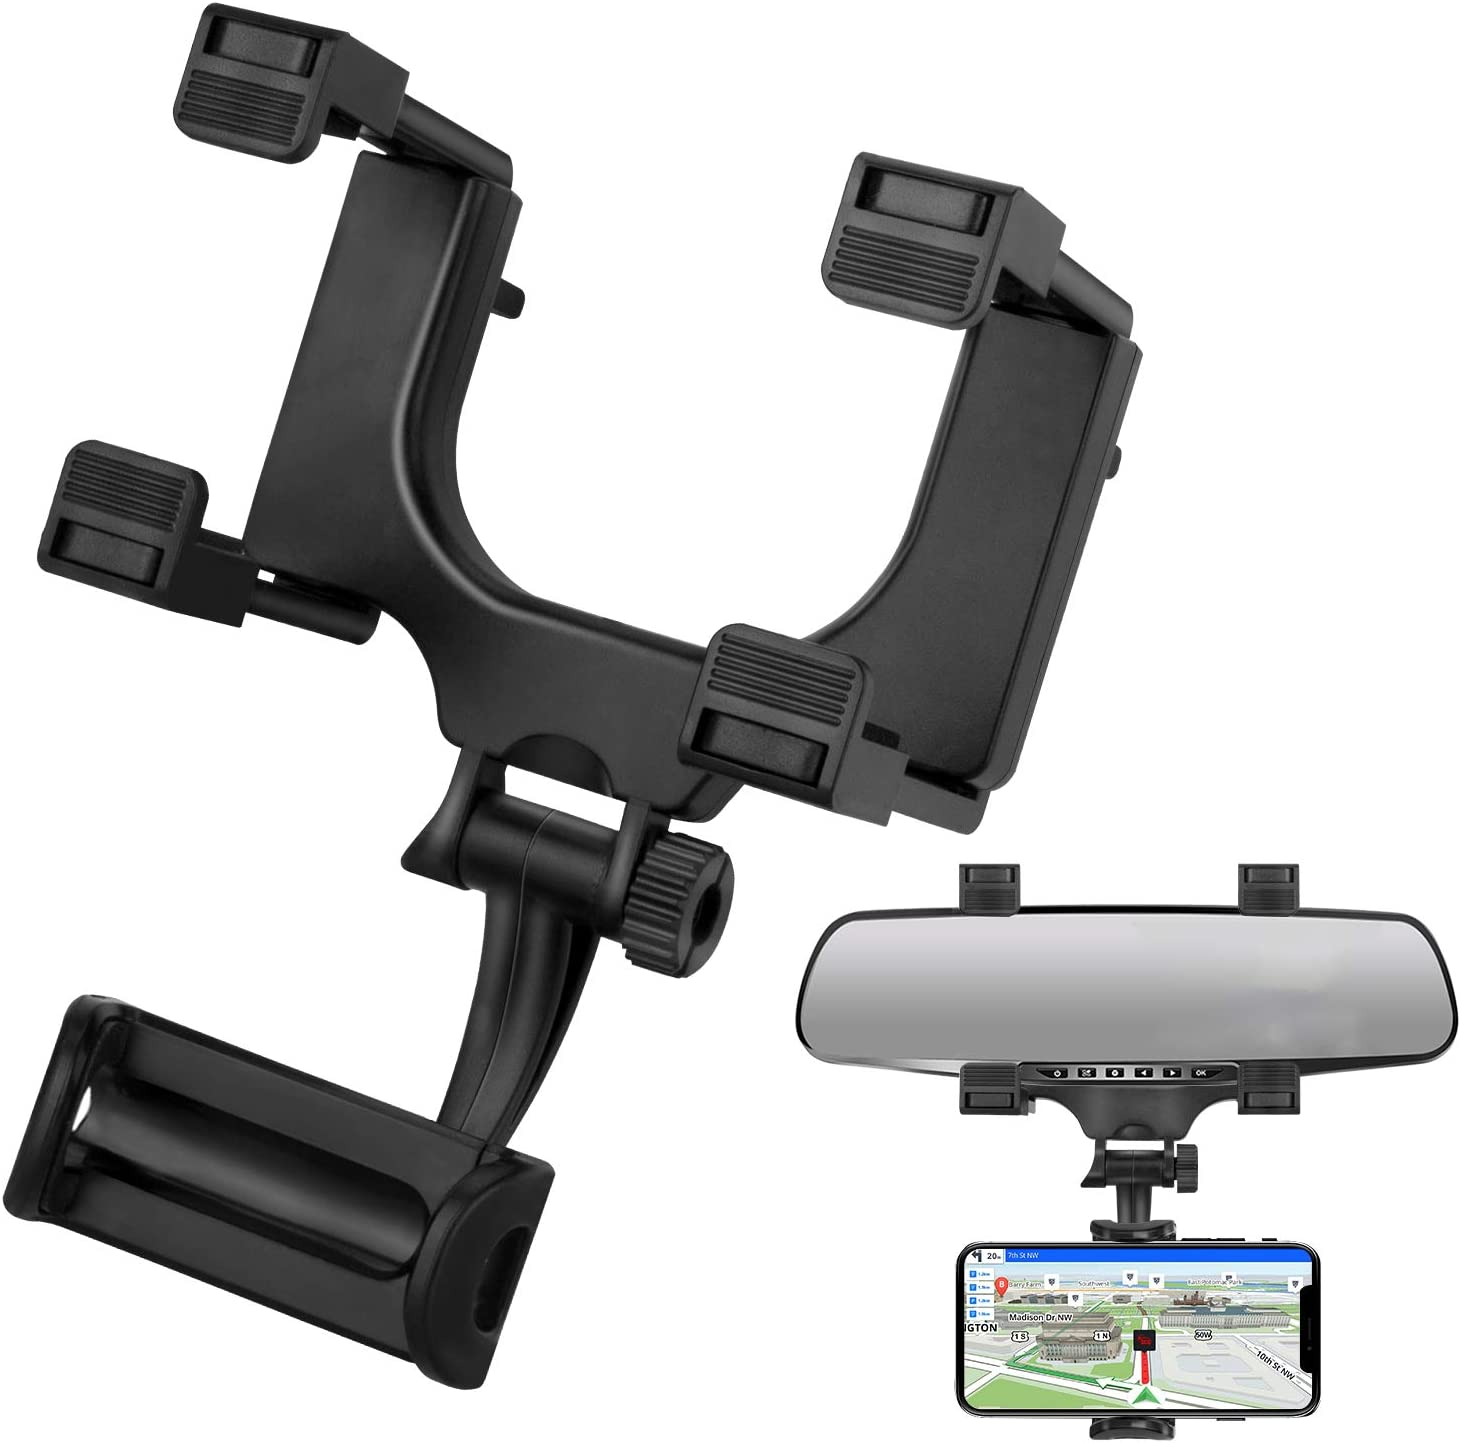 HOULIY Phone Car Holder Rear View Mirror Phone Mount Car Phone Holder Mount, Universal Cell Phone Automobile Cradles Fit with All Cell Phones Eye Level Safe Viewing